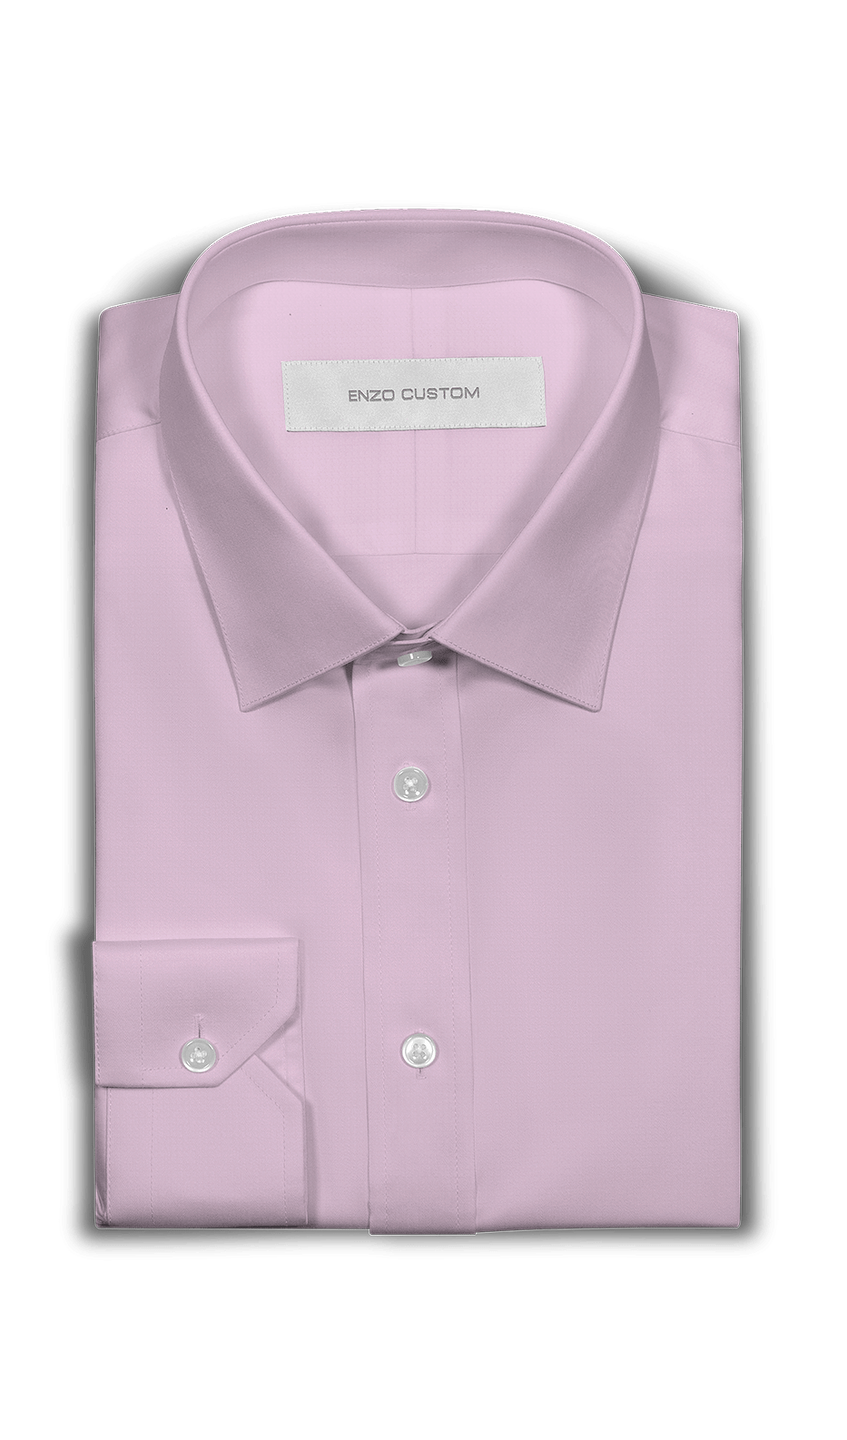 Solid Pink Dress Shirt - Enzo Custom